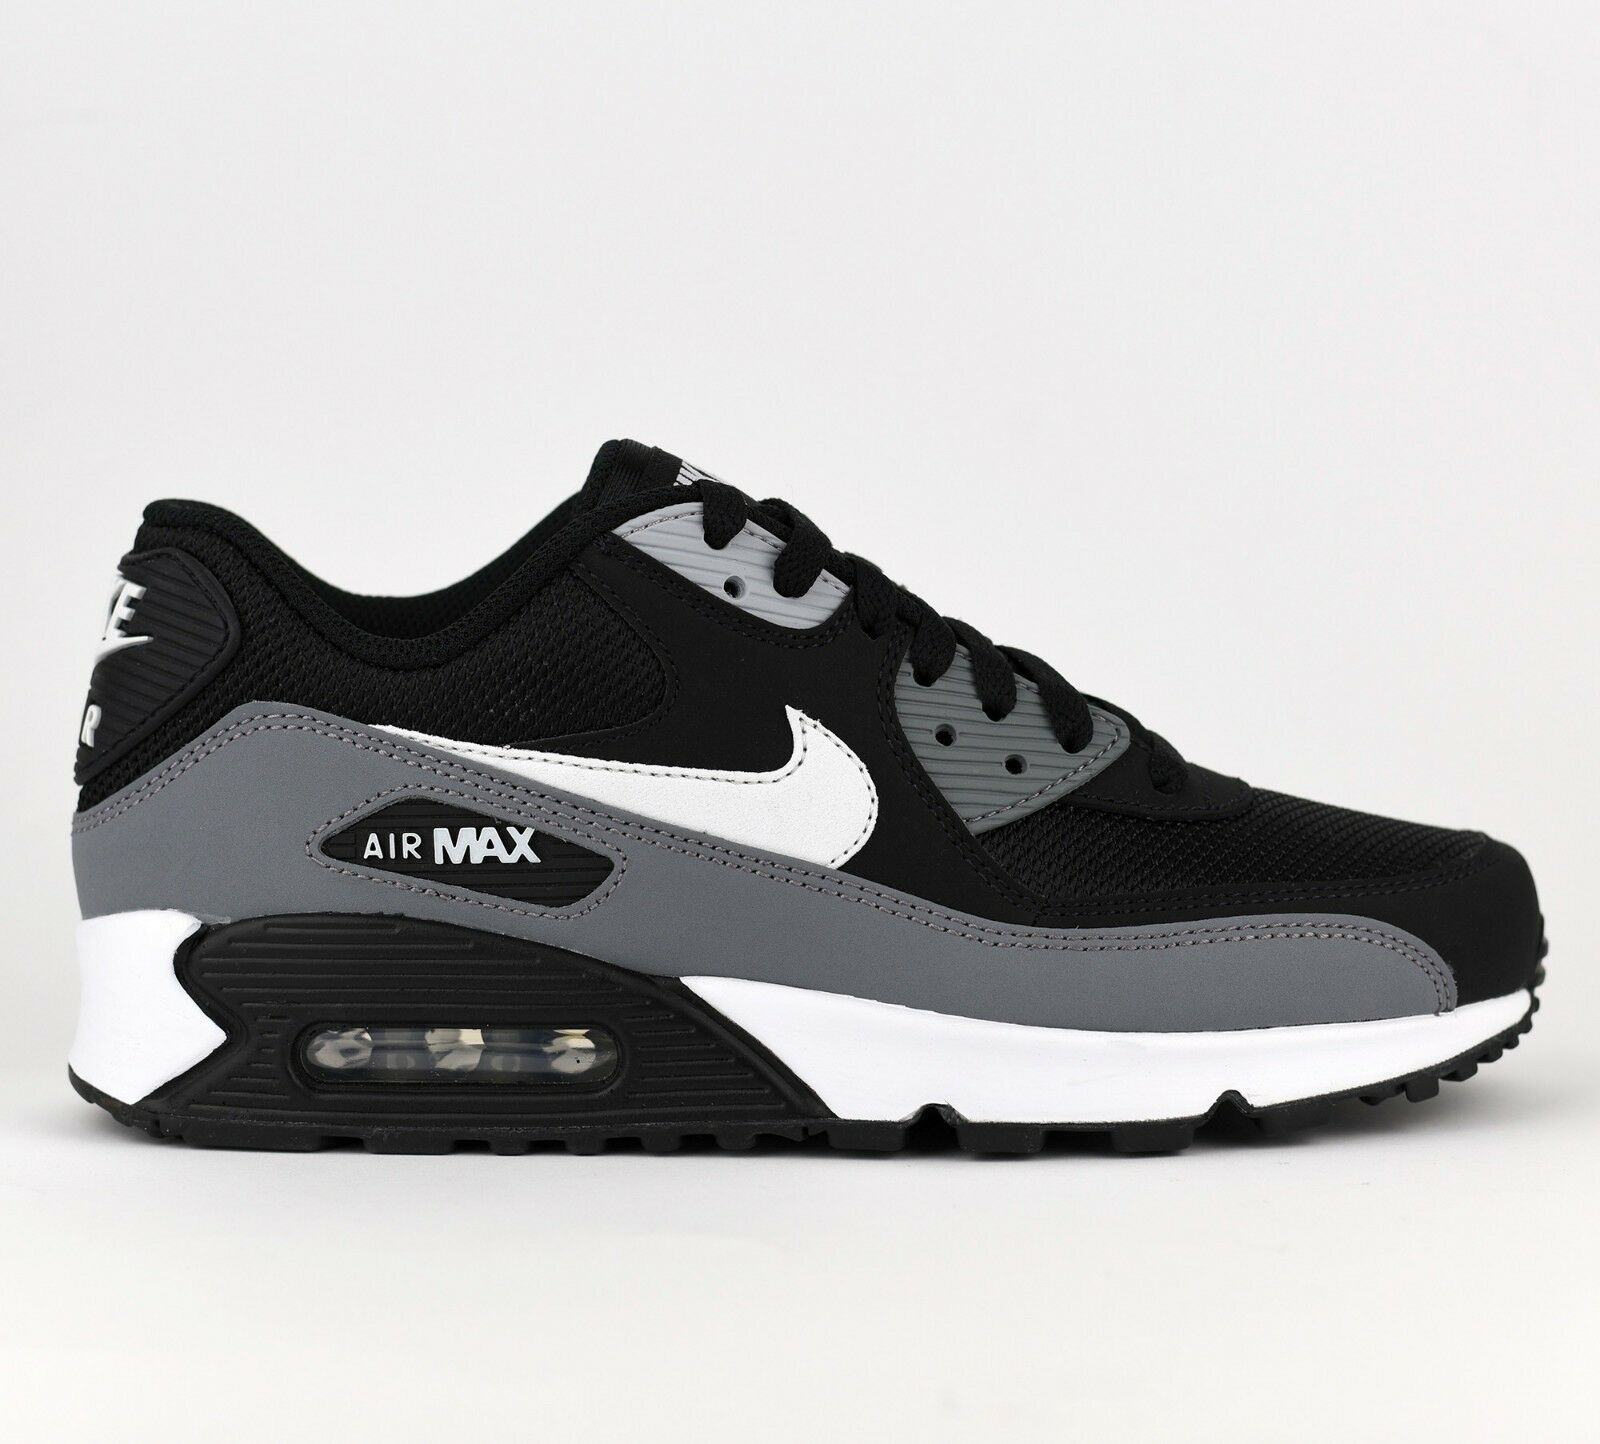 Nike Air Max 90 Essential Men Lifestyle Sneakers New Black White Grey AJ1285-018